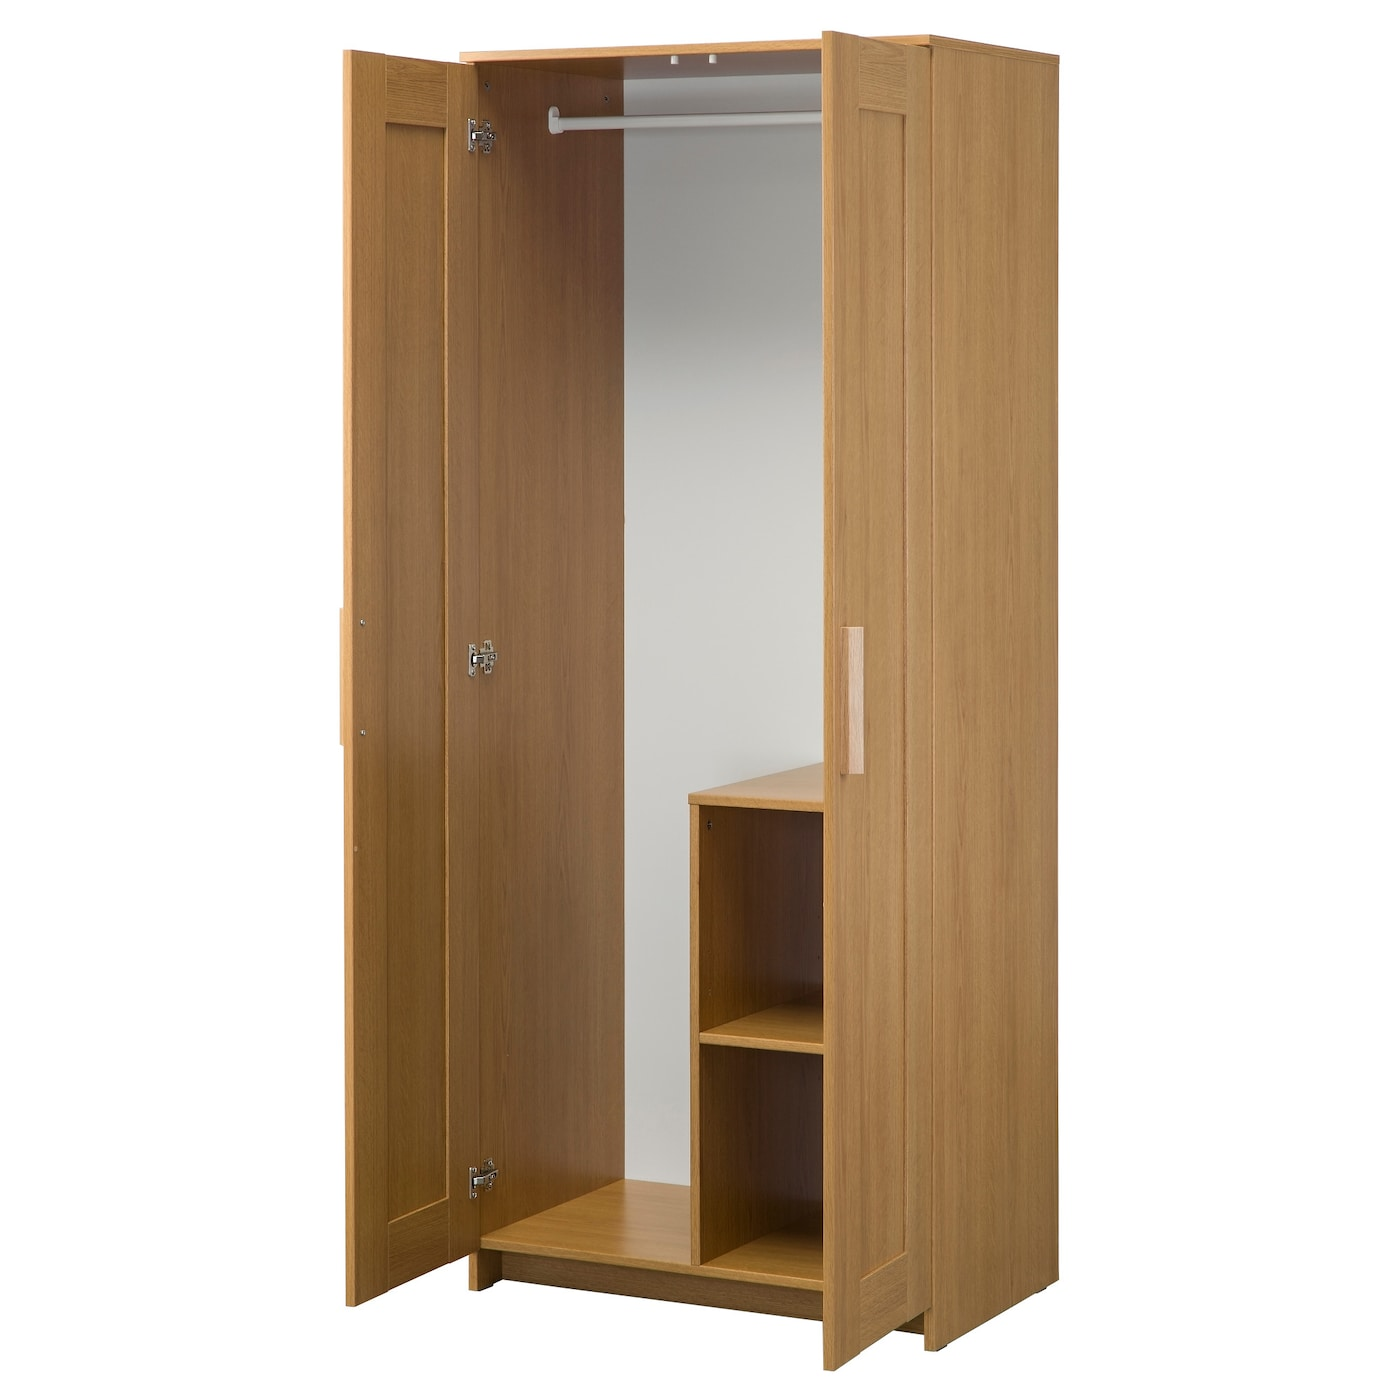 IKEA BRIMNES wardrobe with 2 doors Perfect for folded as well as long and short hanging  sc 1 st  Ikea & BRIMNES Wardrobe with 2 doors Oak effect 78 x 190 cm - IKEA